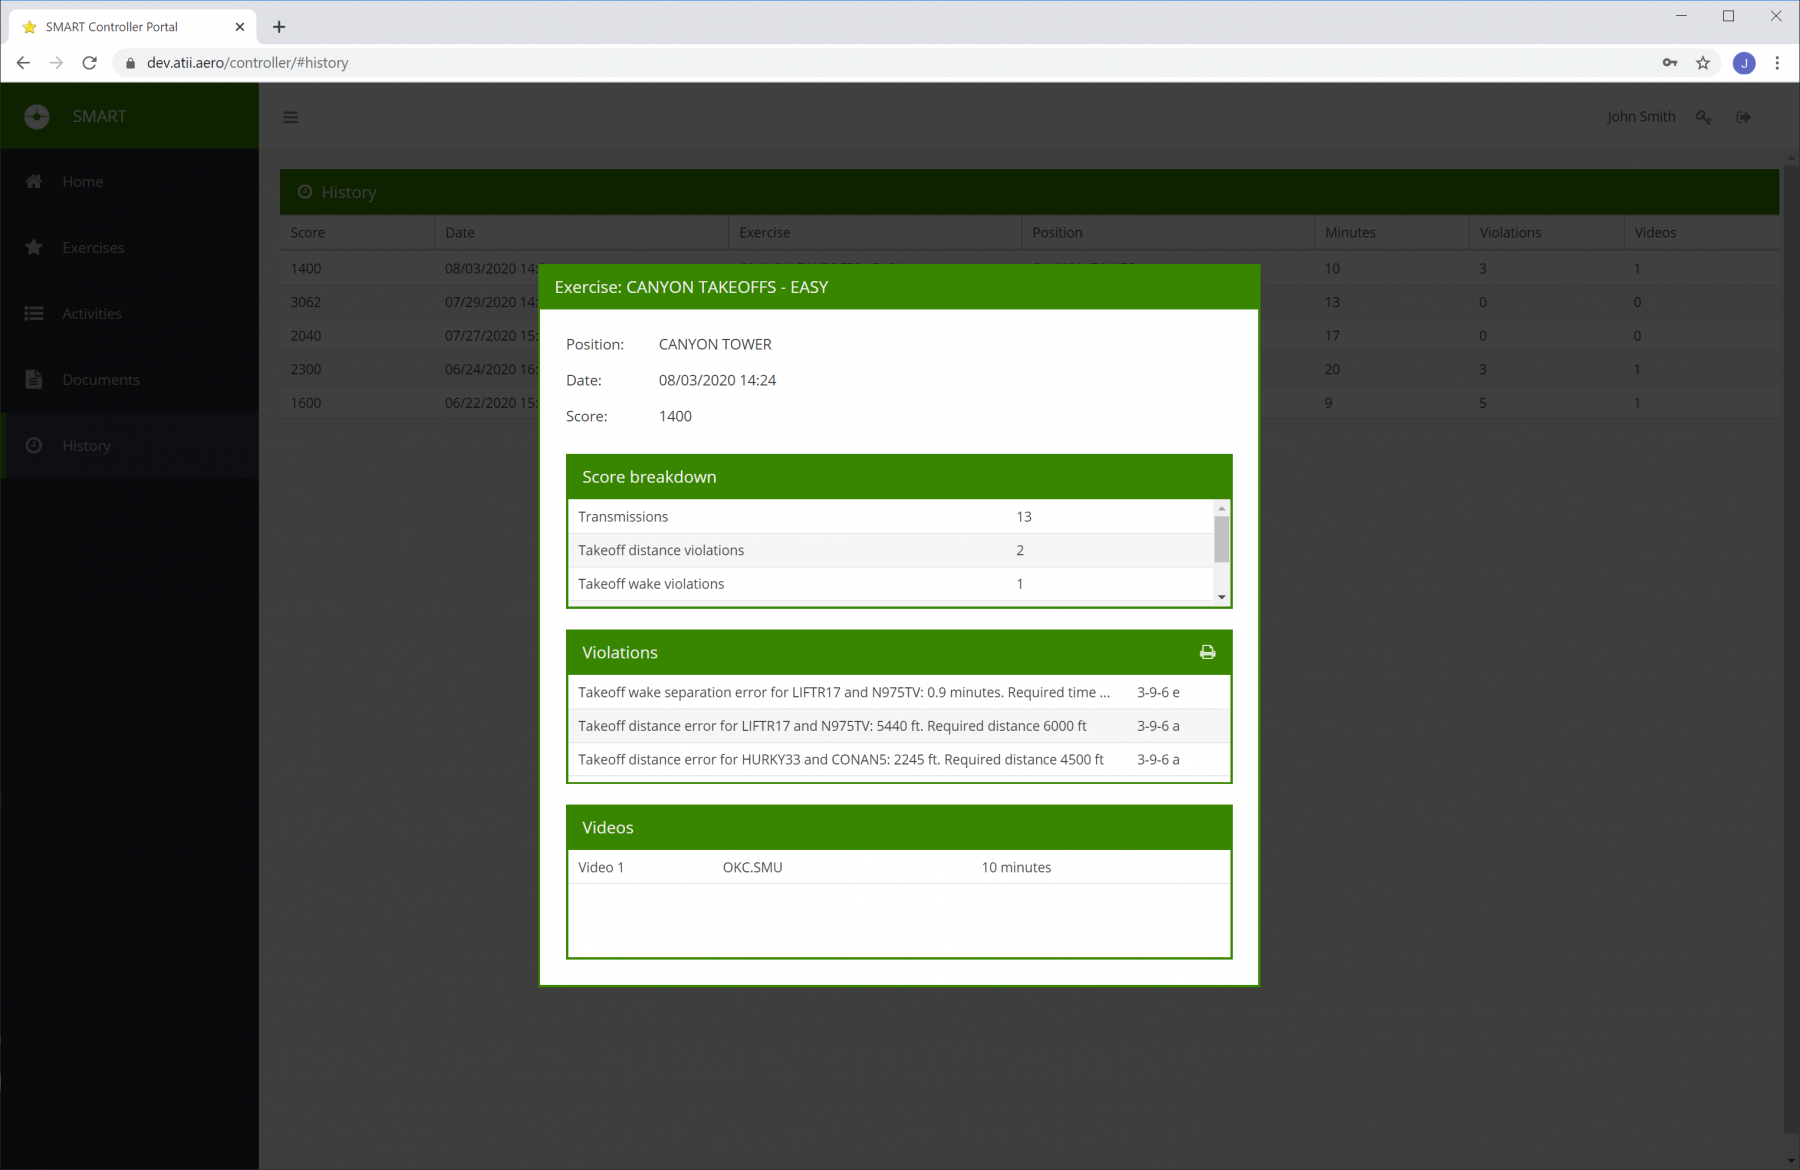 SMART Student Portal - Completed Exercise